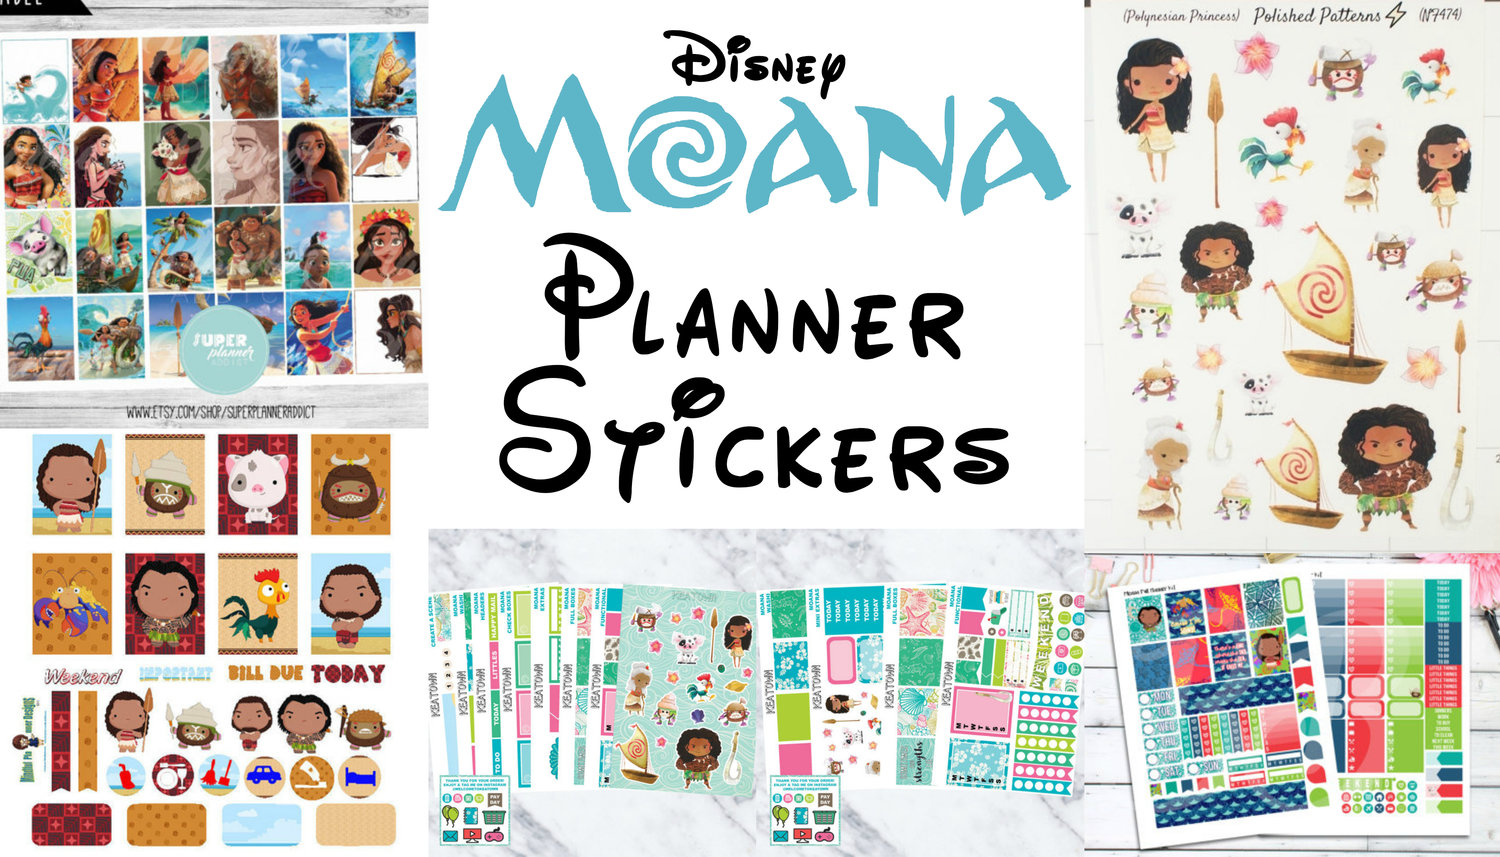 Disney Moana Printable Planner Stickers Decorate Your Own Planner